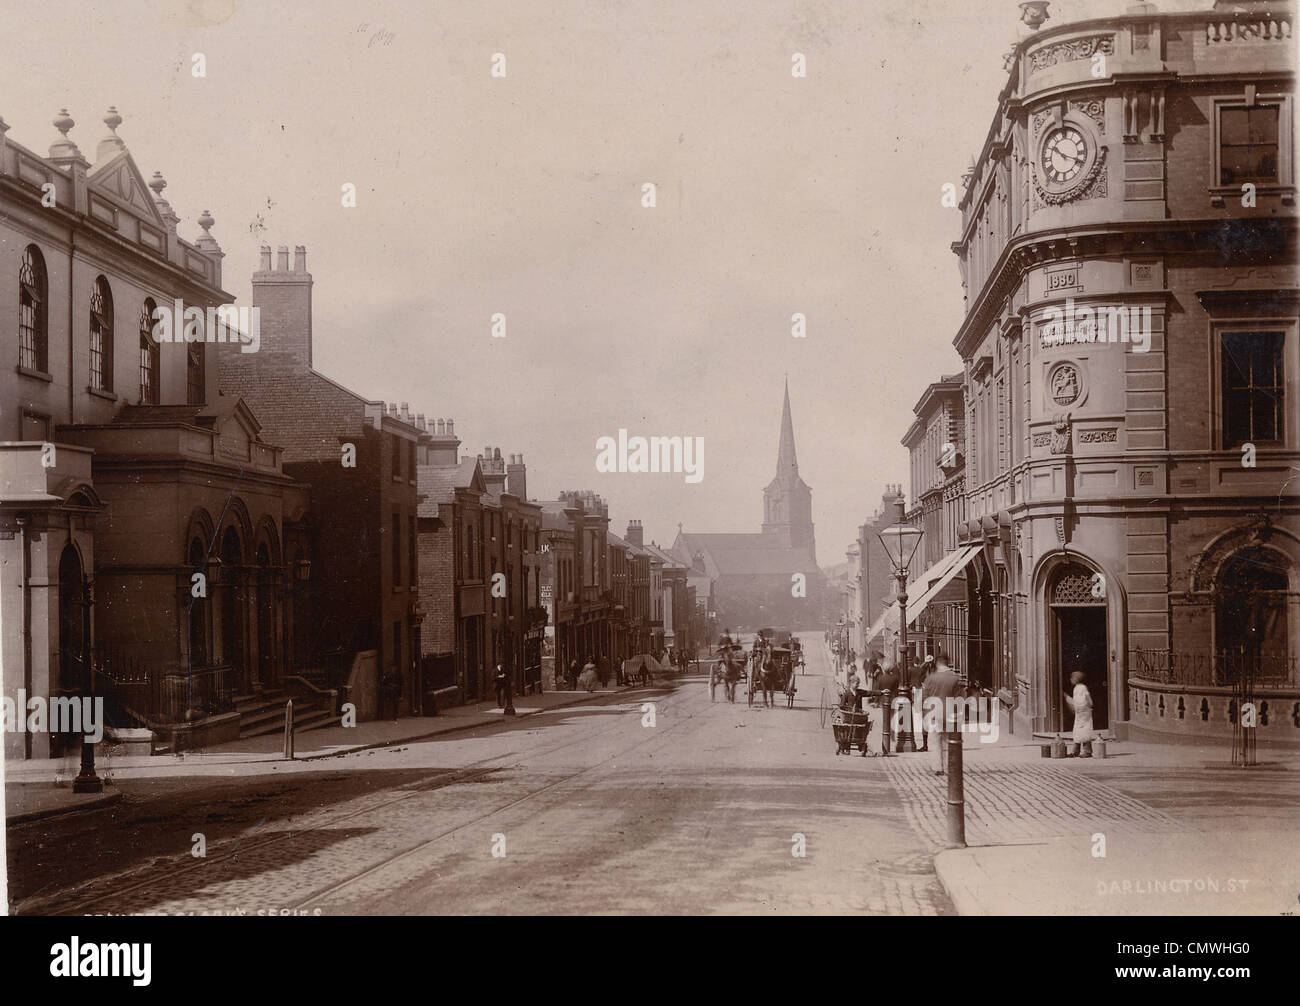 Darlington Street, Wolverhampton, 1890s. Darlington Street at the junctions with Waterloo Road (right) and School - Stock Image